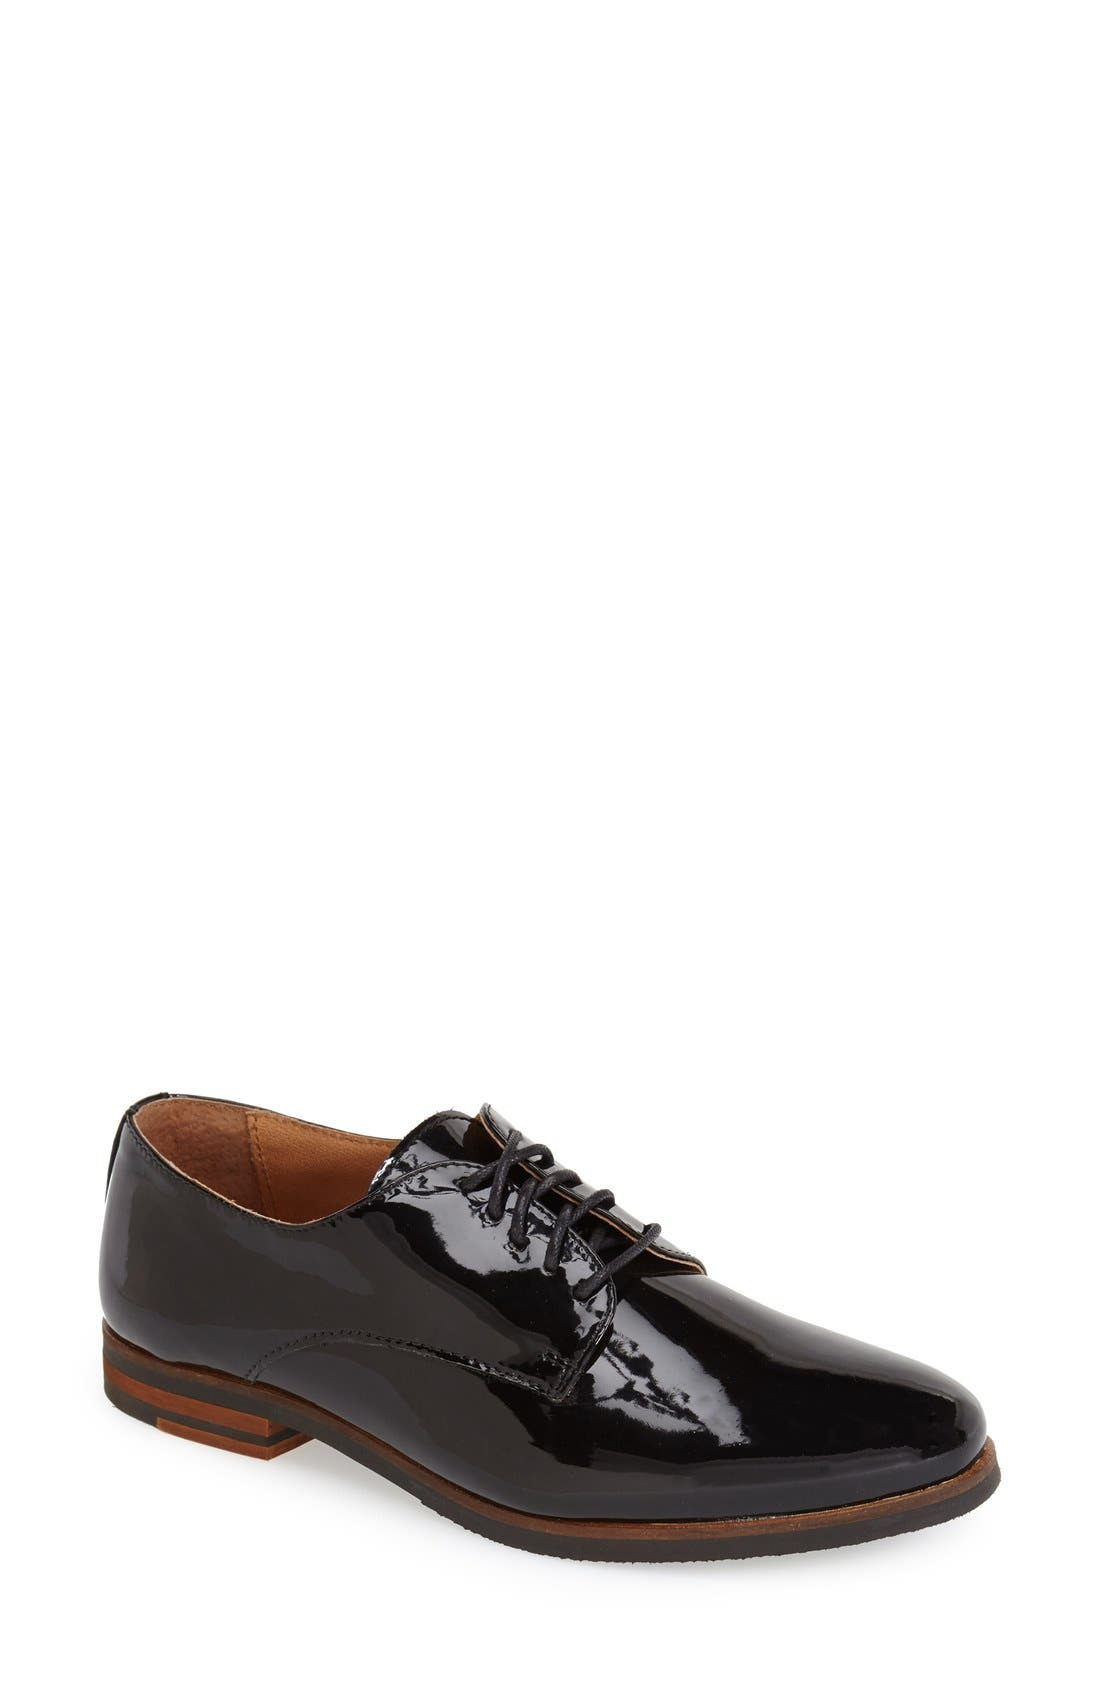 Main Image - Dune London 'Laboux' Patent Leather Oxford (Women)